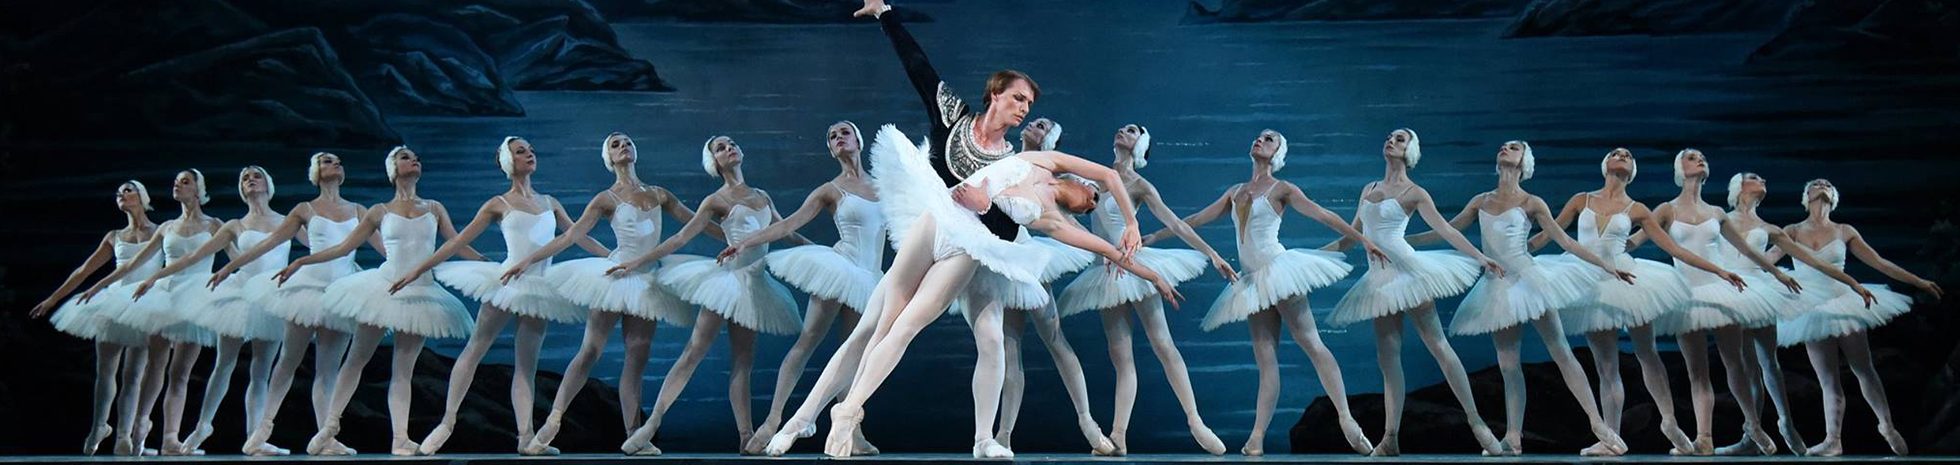 Swan Lake: National Ballet Theatre of Odessa